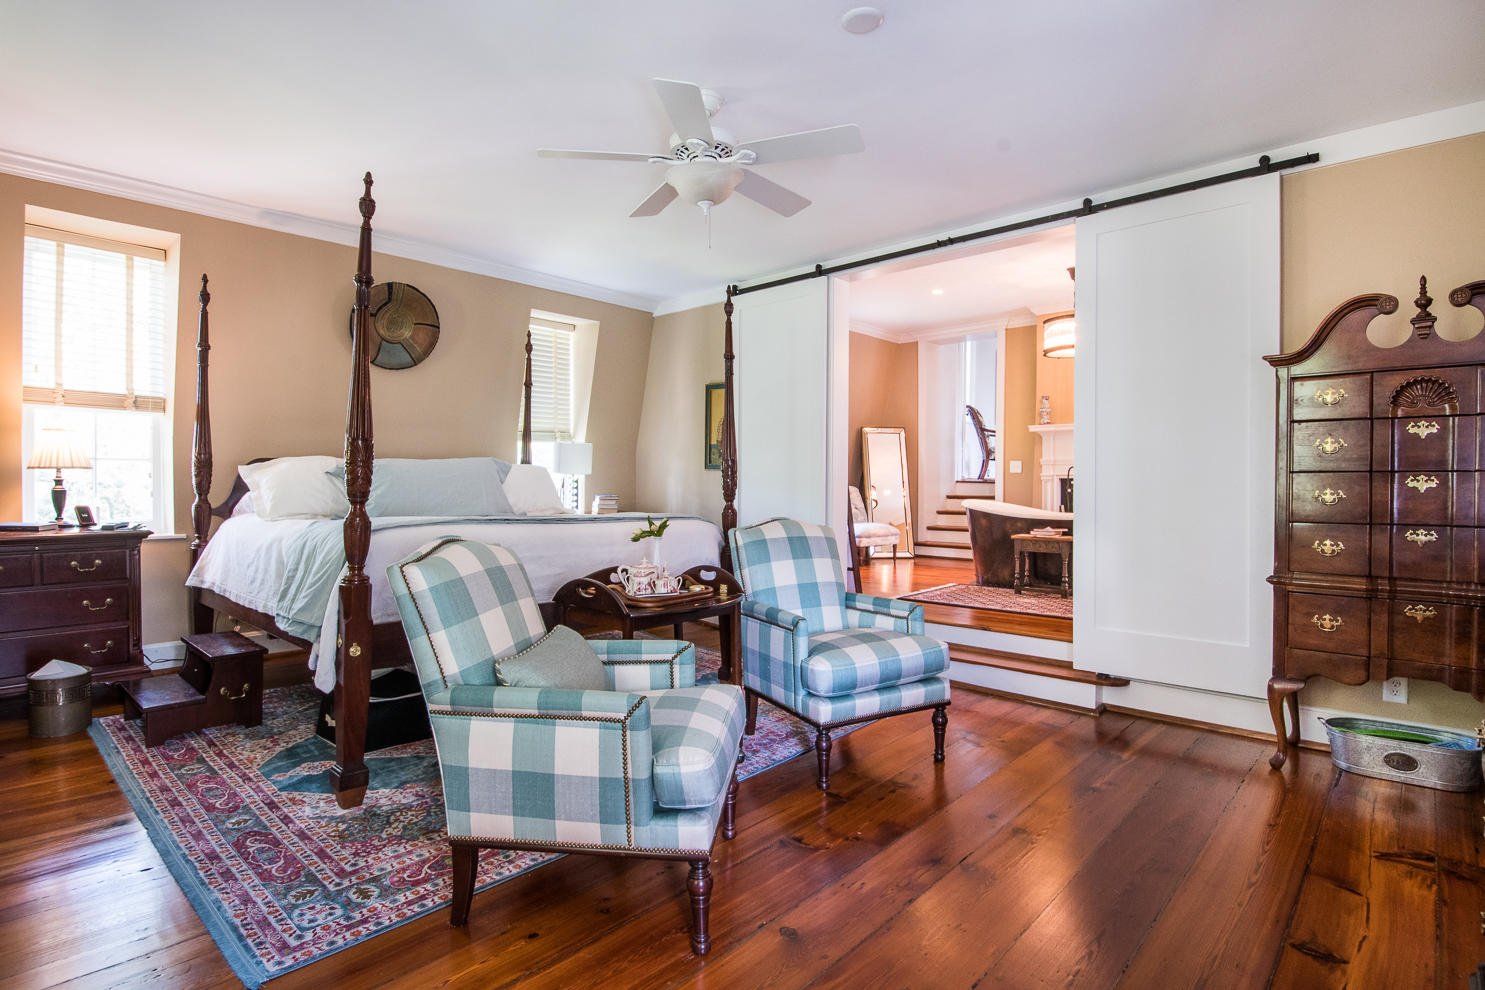 South of Broad Homes For Sale - 1 Prices, Charleston, SC - 30